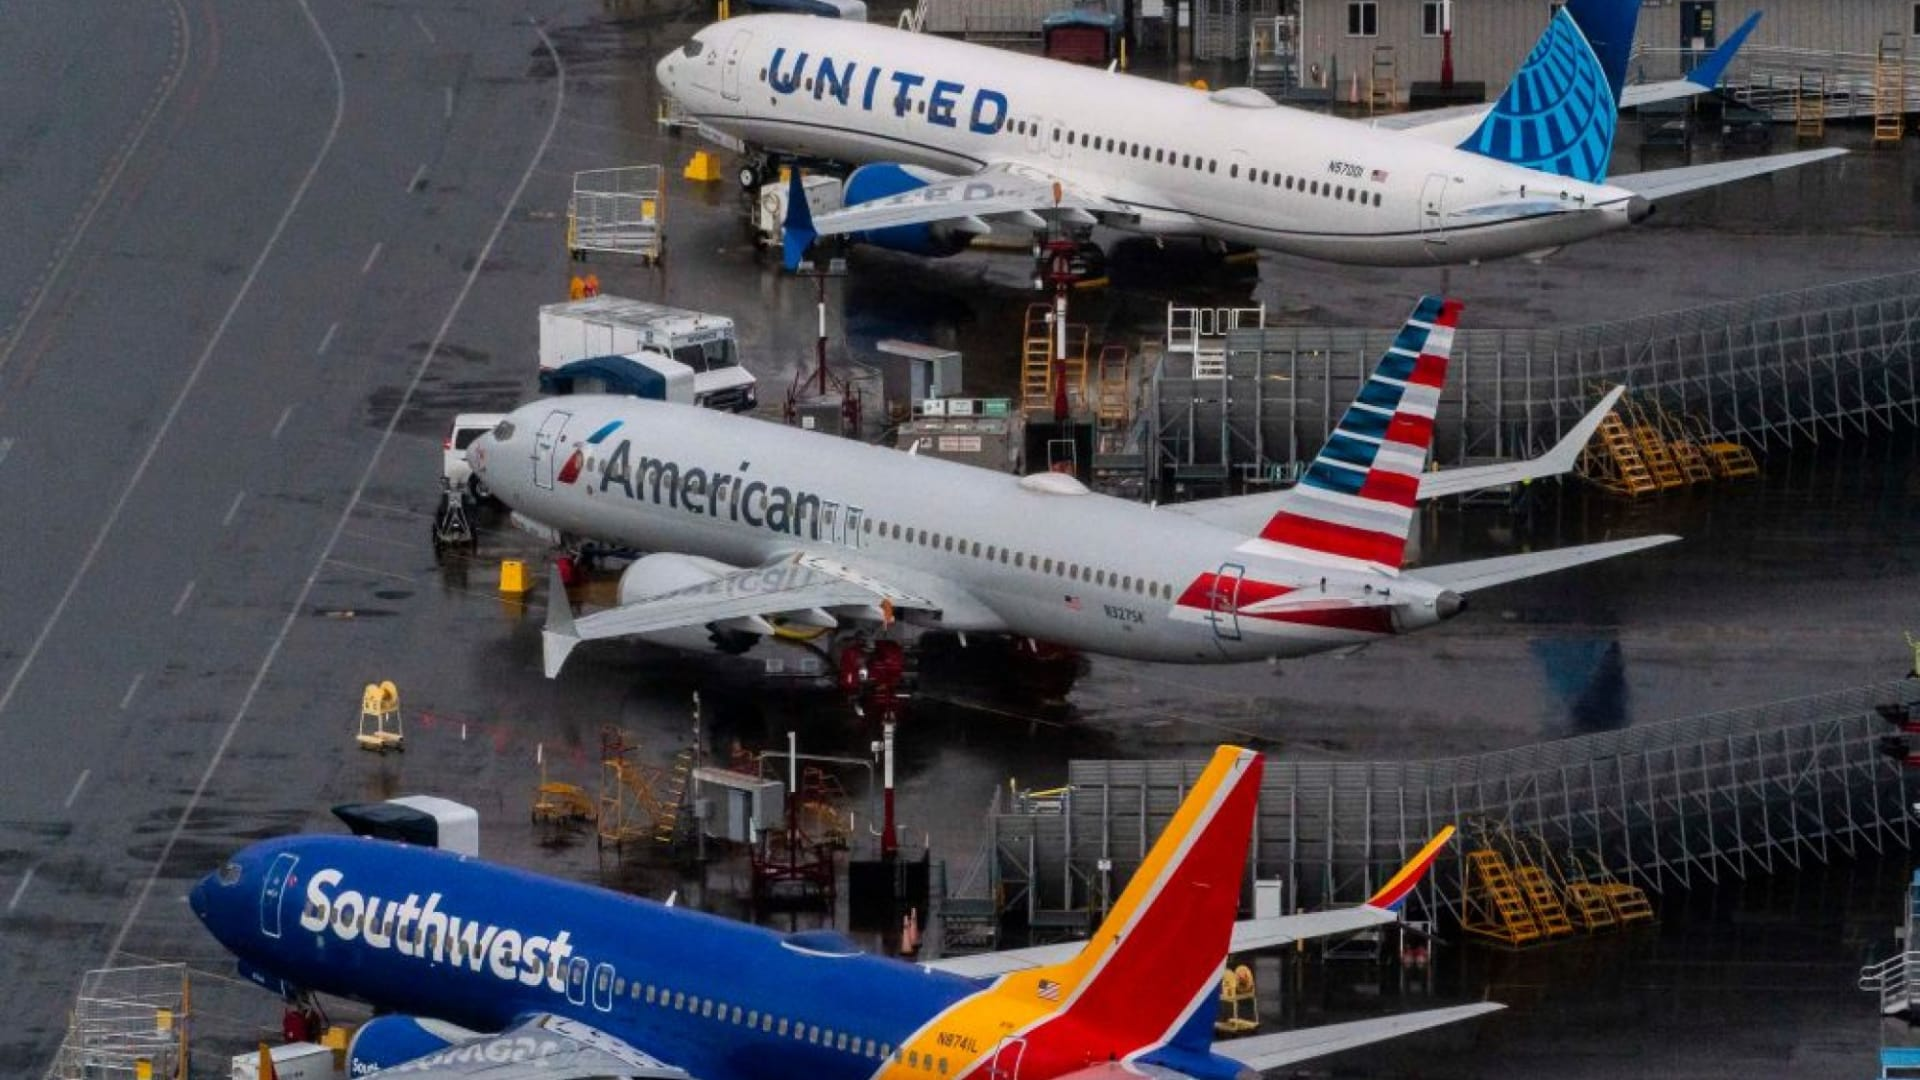 Southwest Airlines Just Made a Big Decision. Will Passengers Agree It's Enough?